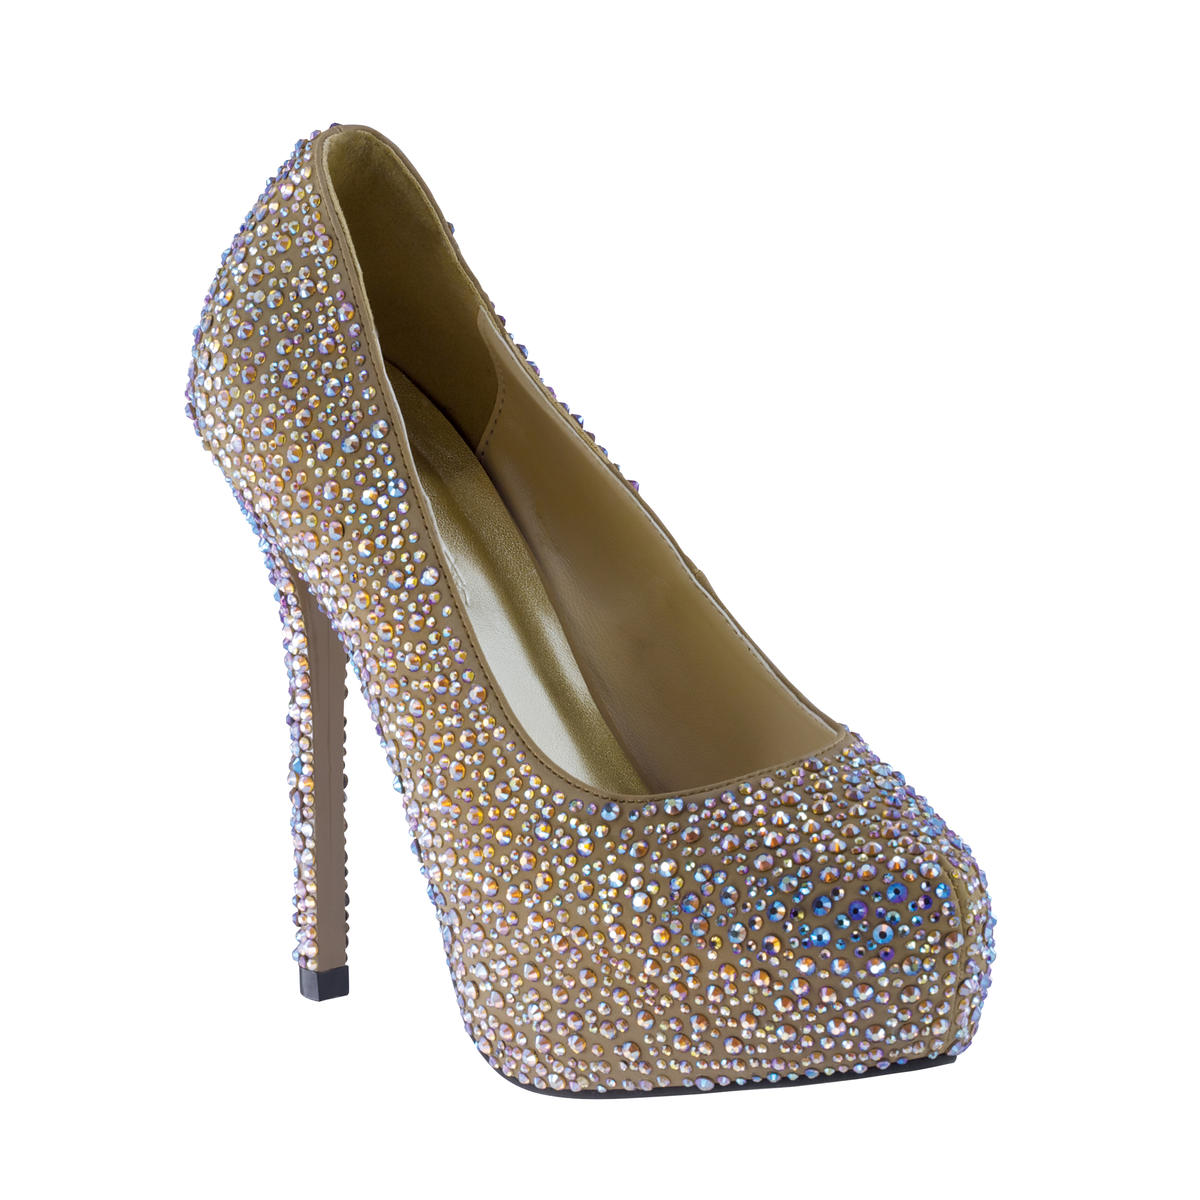 Johnathan Kayne Shoes Glitterati-9000